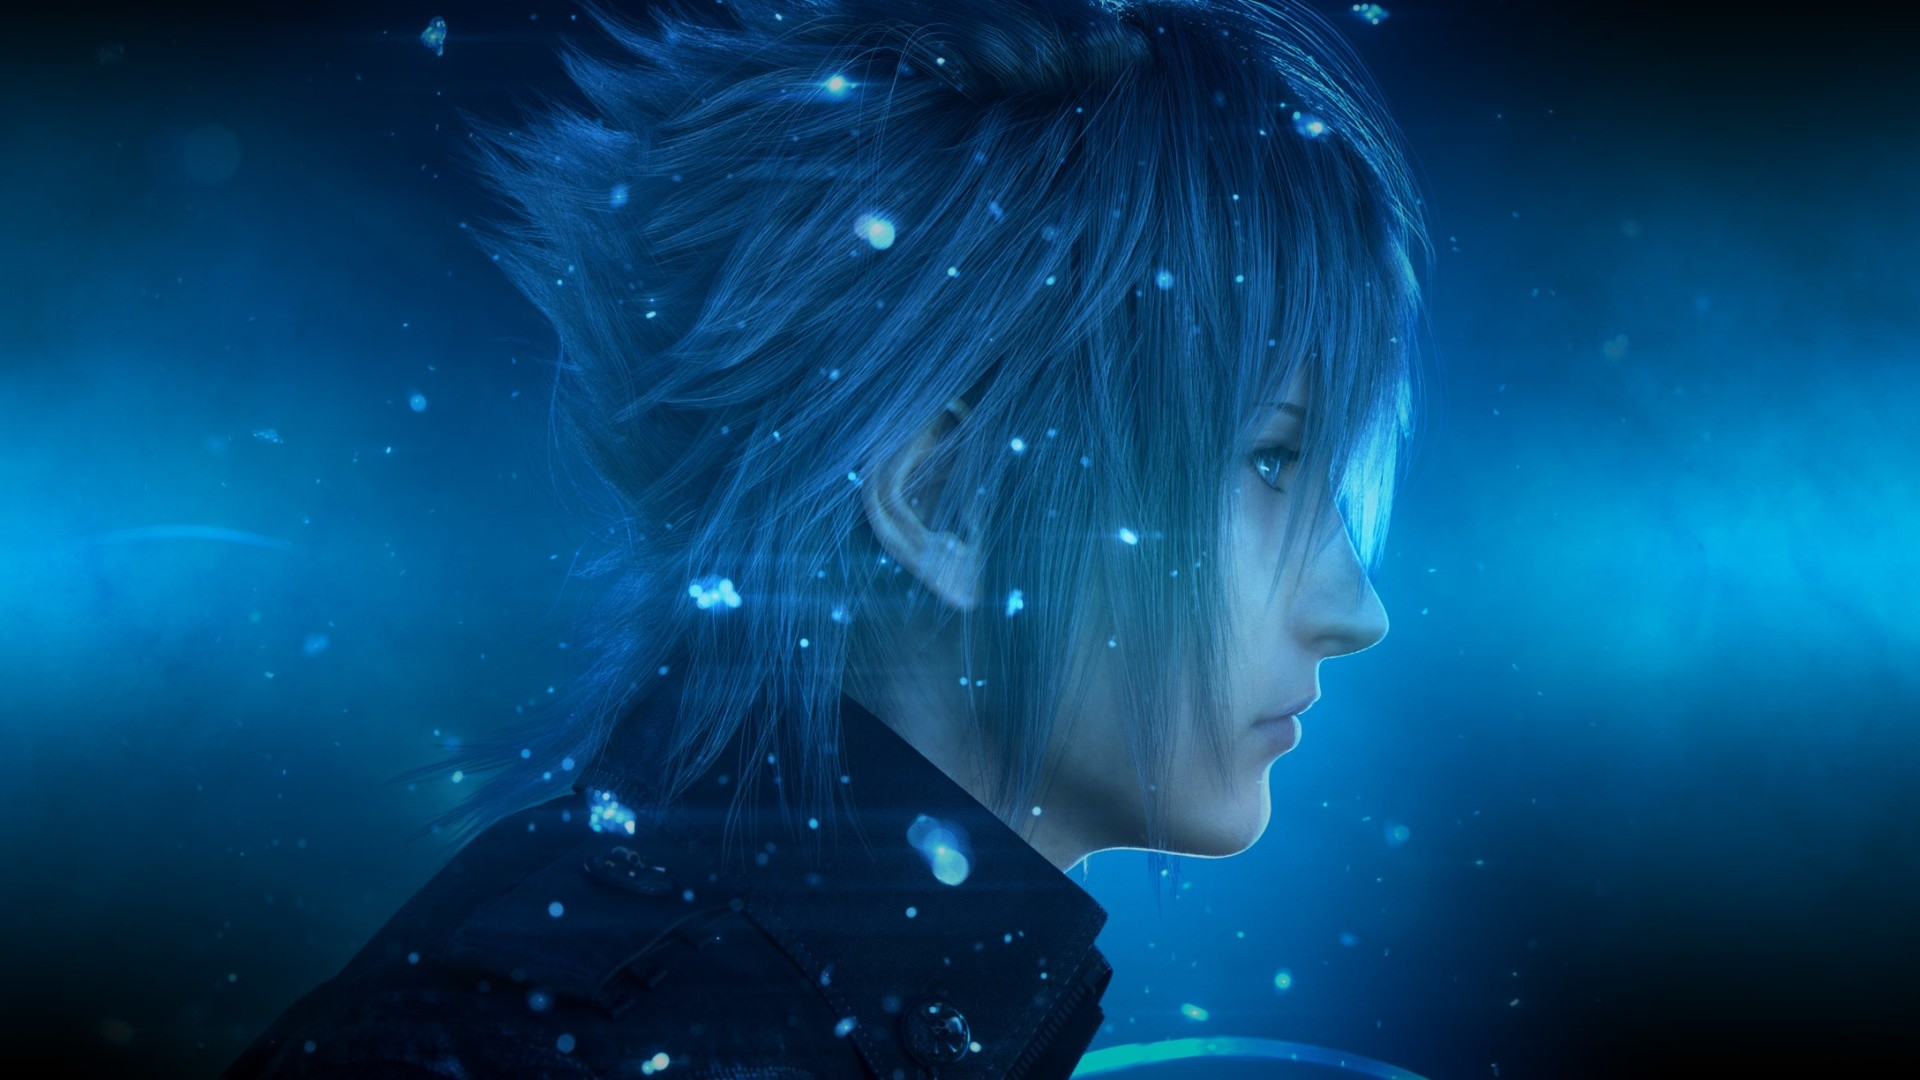 FFXV Wallpapers